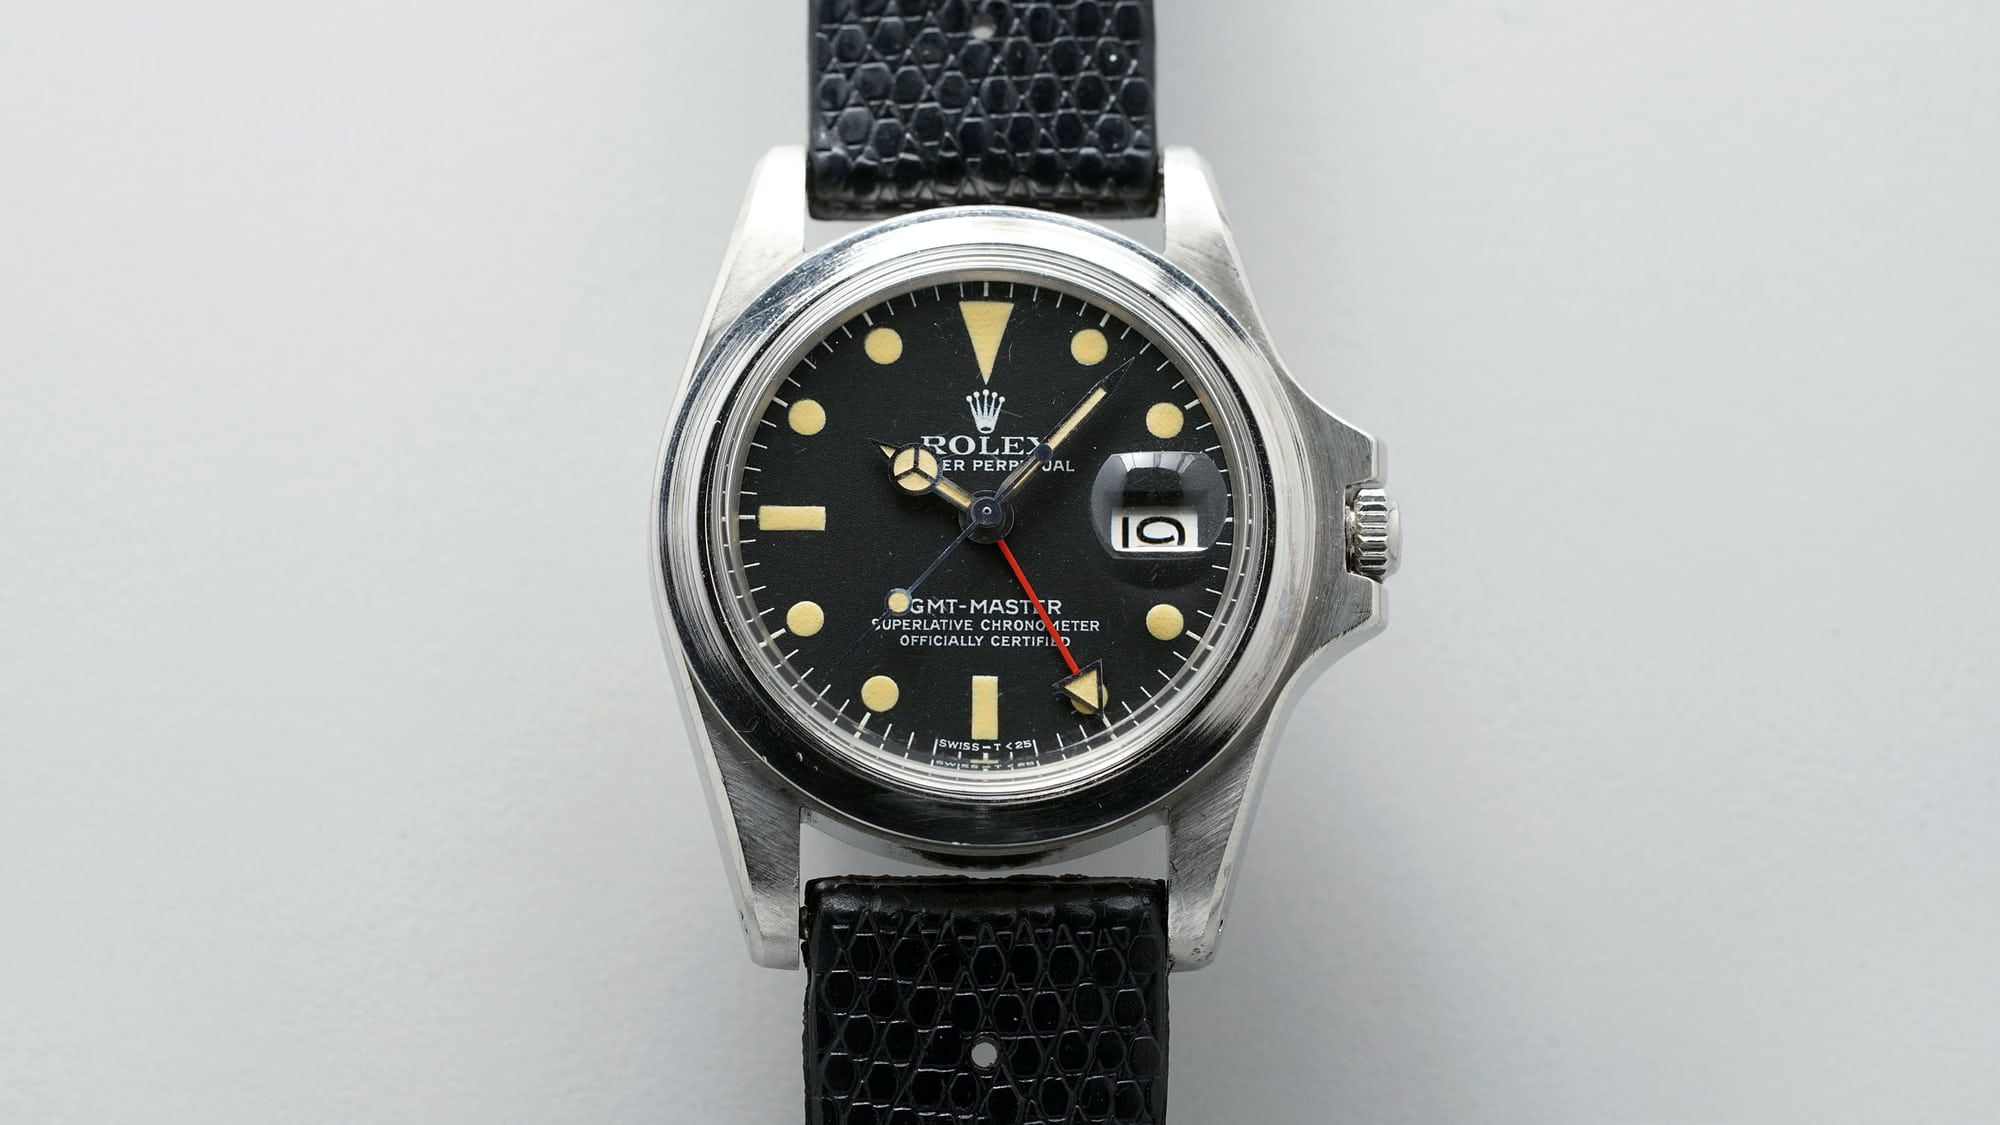 Breaking News: Marlon Brando's Rolex GMT-Master From 'Apocalypse Now' Will Be Auctioned At Phillips